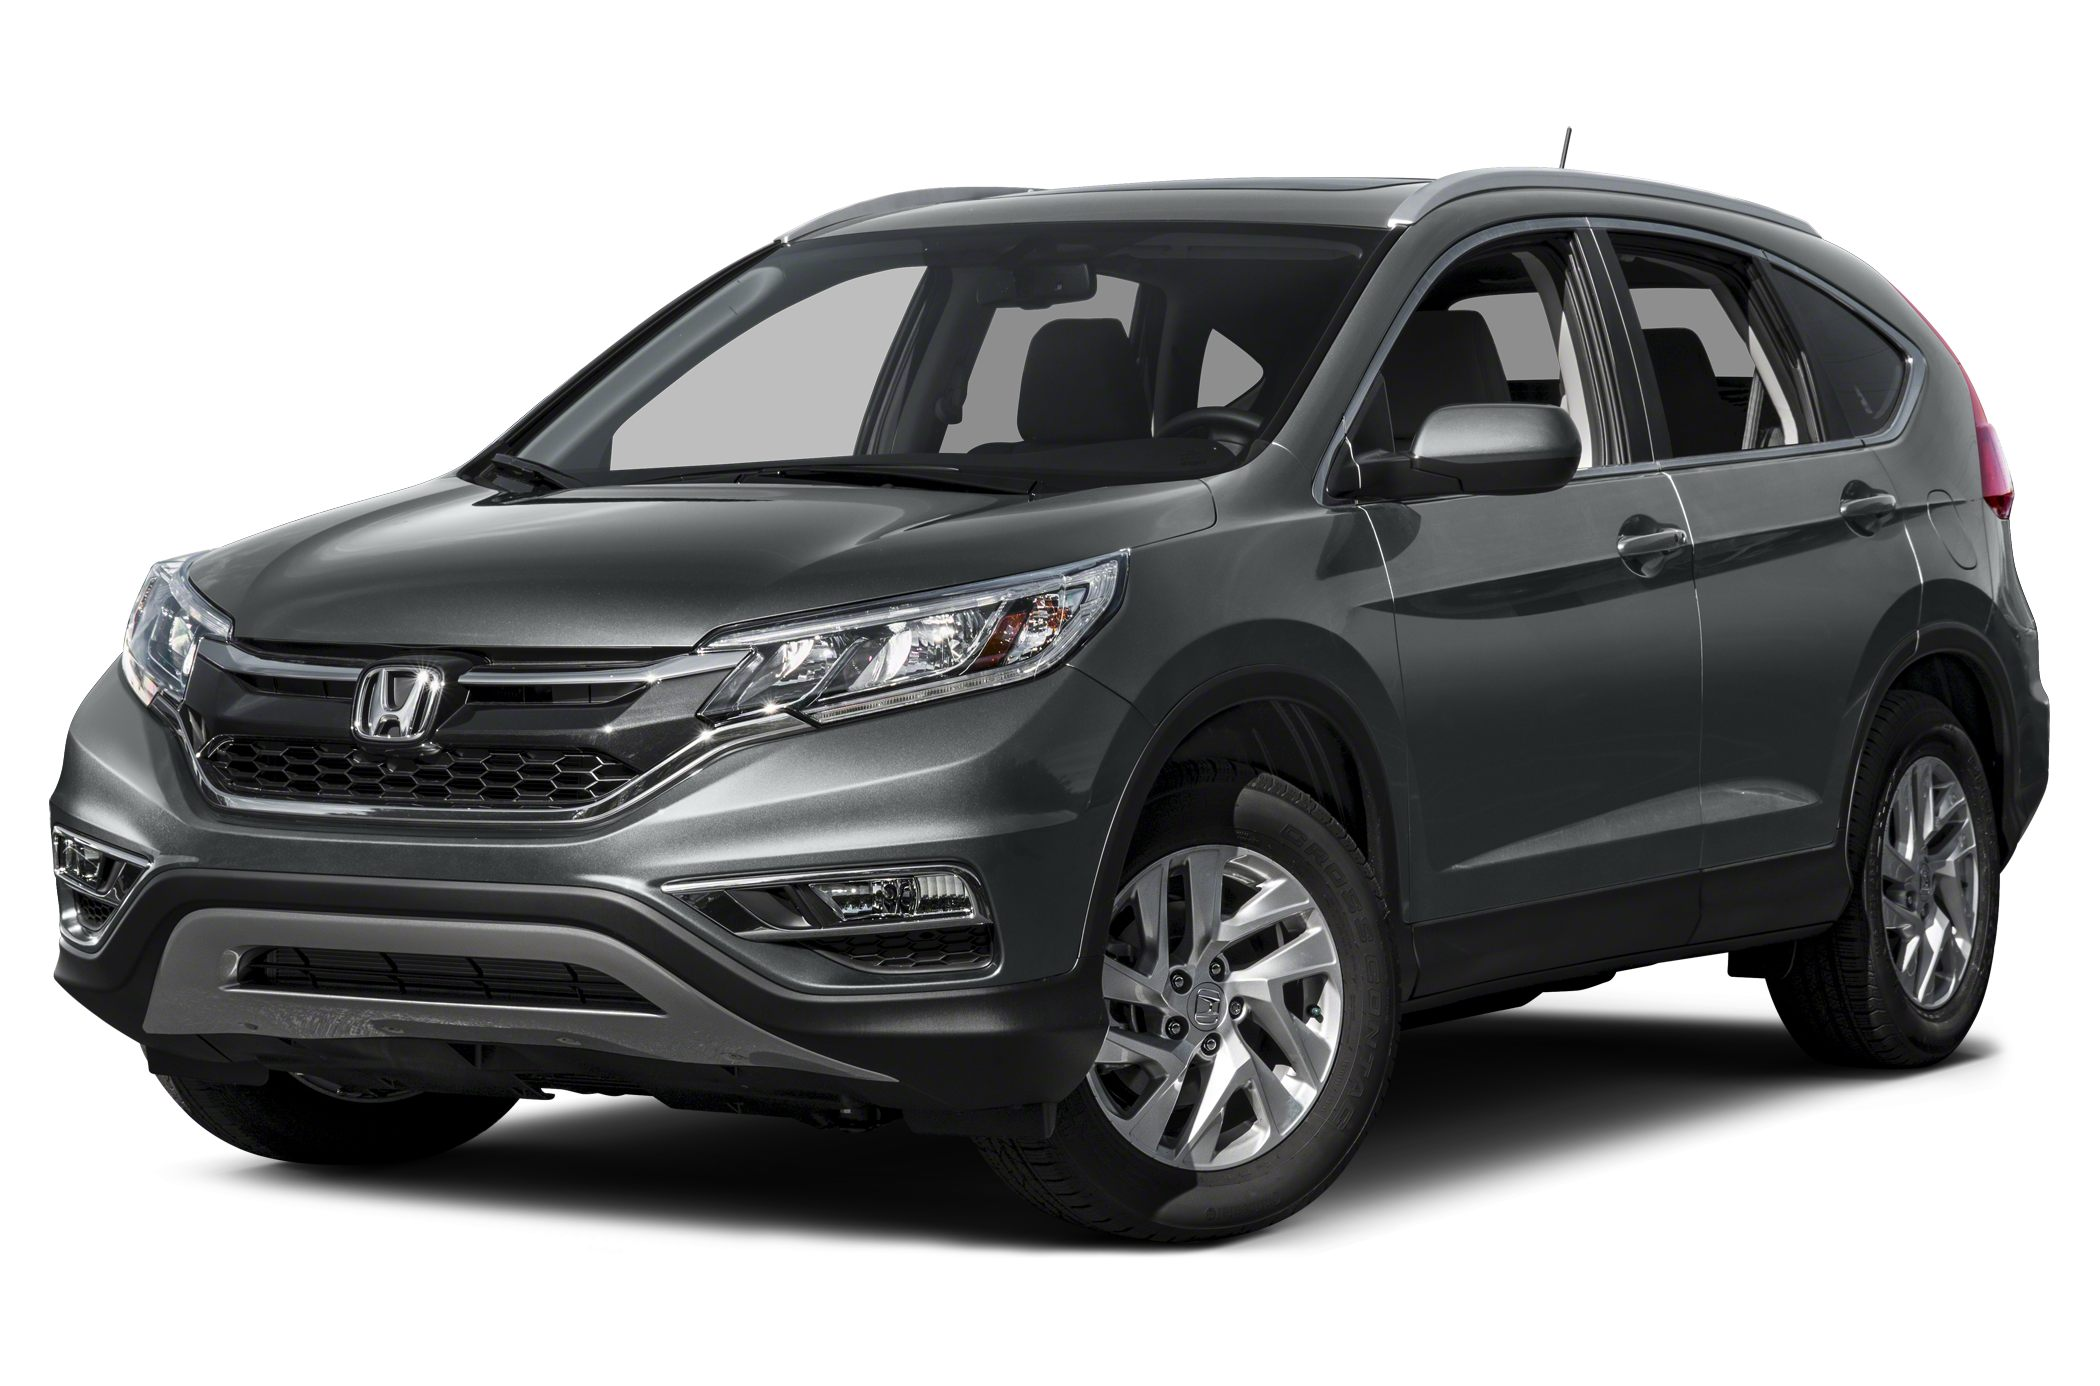 2015 Honda CR-V EX-L CARFAX One-Owner Clean CARFAX Modern Steel Metallic 2015 Honda CR-V EX-L FW